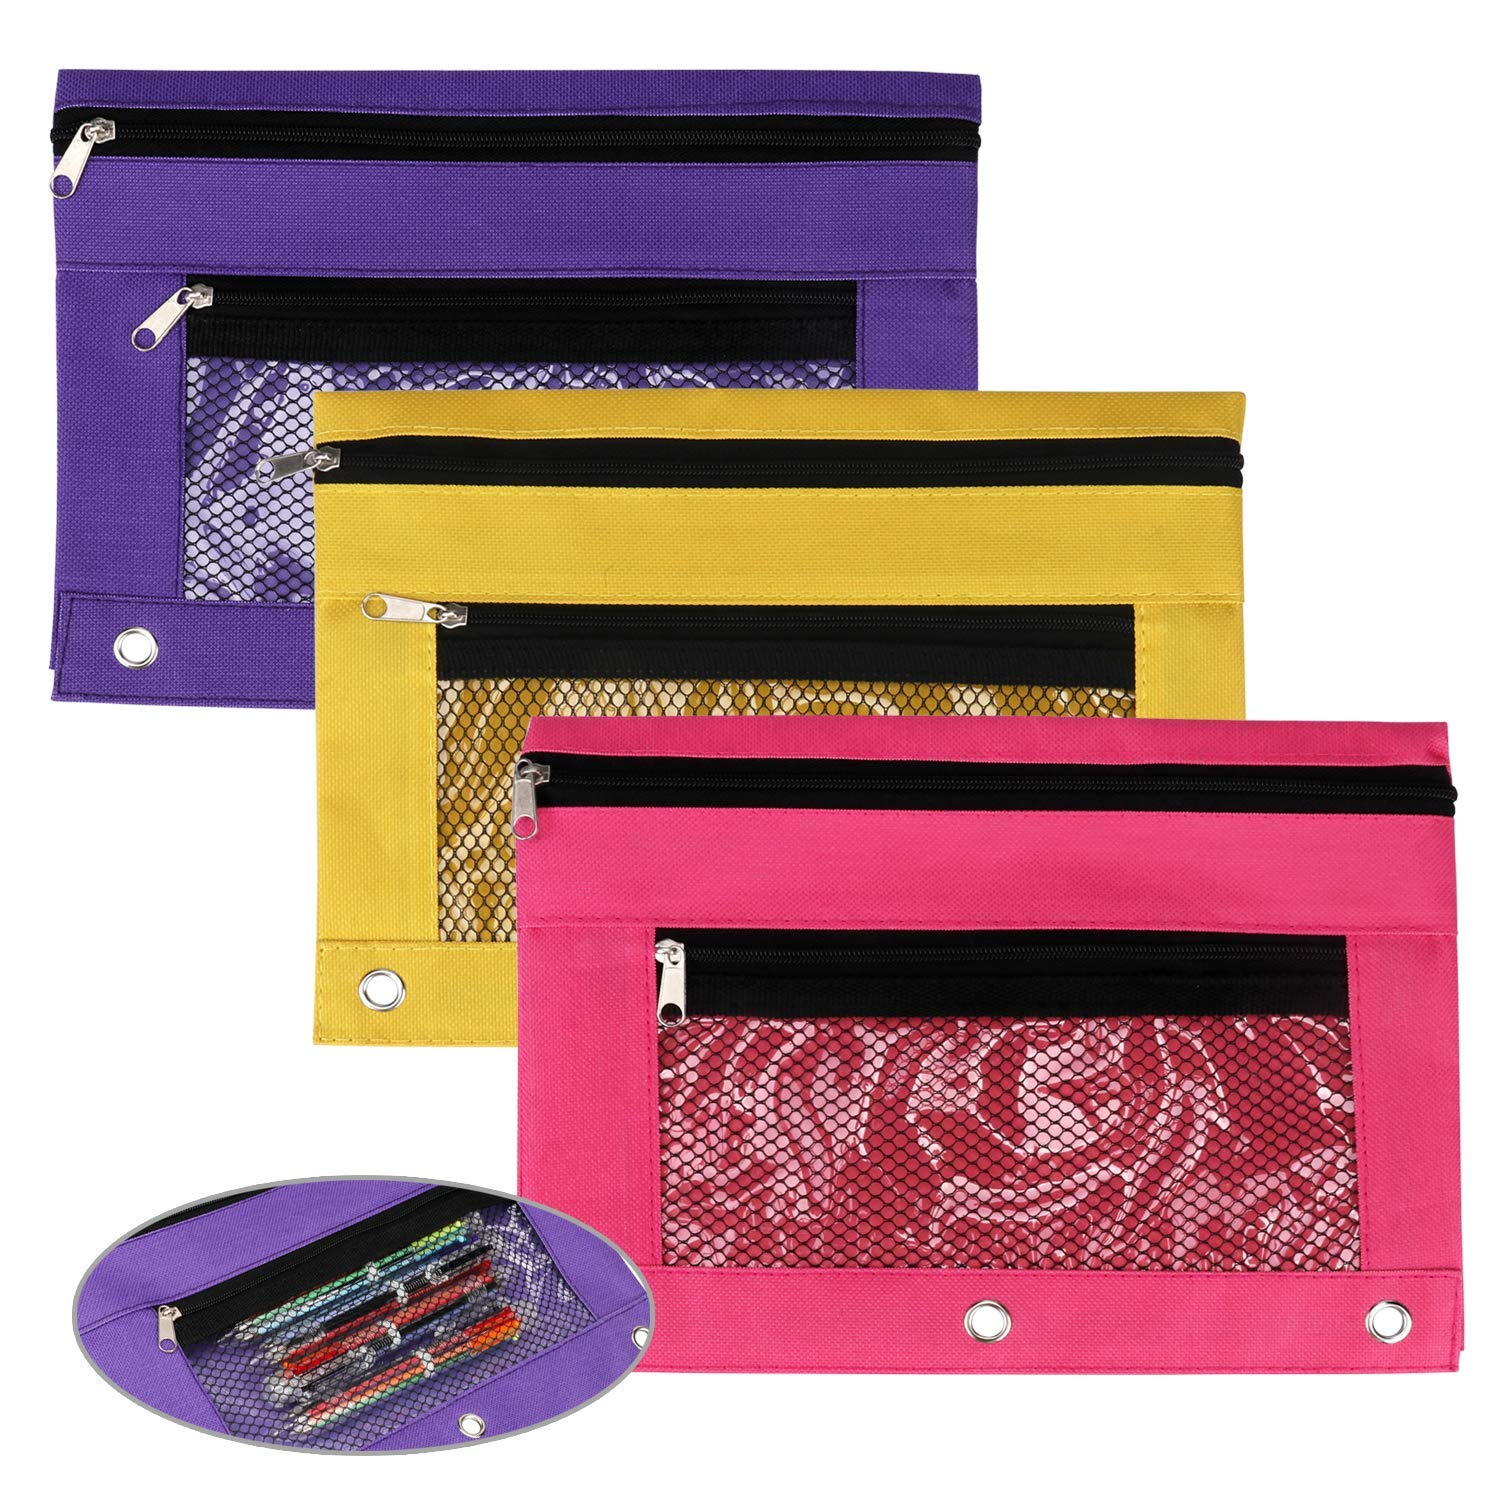 CIEHER 3-Ring Pencil Pouch with a Mesh Window Zipper Pencil Case with Mesh Window 3 Pieces per Set (Purple, Yellow, Rose Red)